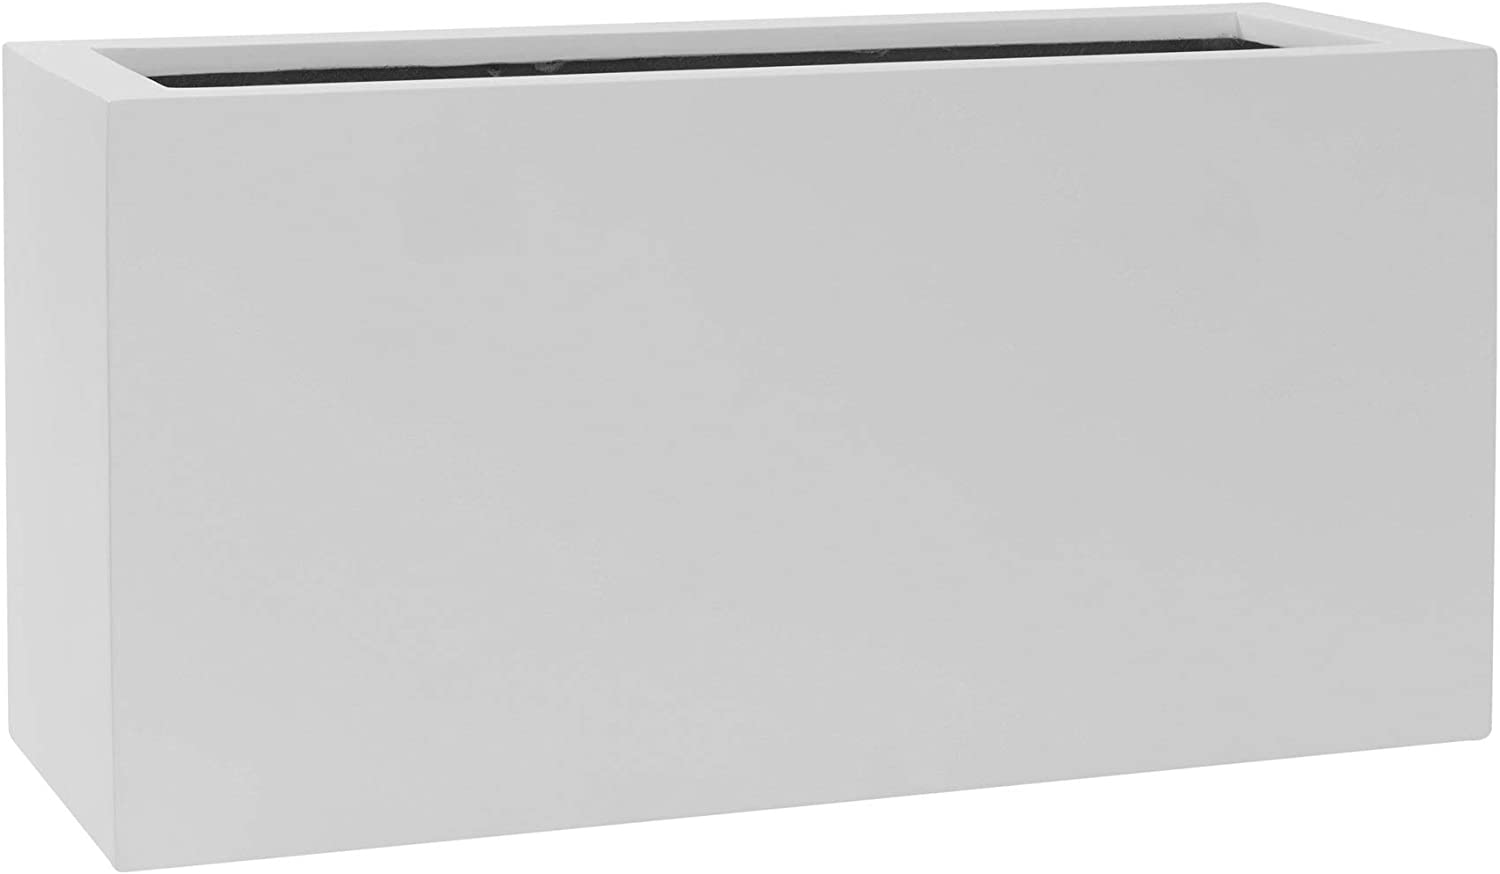 Envelor Natural Jort S Planter Box - Fiberstone - Rectangular Container for Indoor or Outdoor Growing - Grow Plants, Flowers, Orchids, Succulents - Use in Garden, Patio or Porch - Matte White, 32